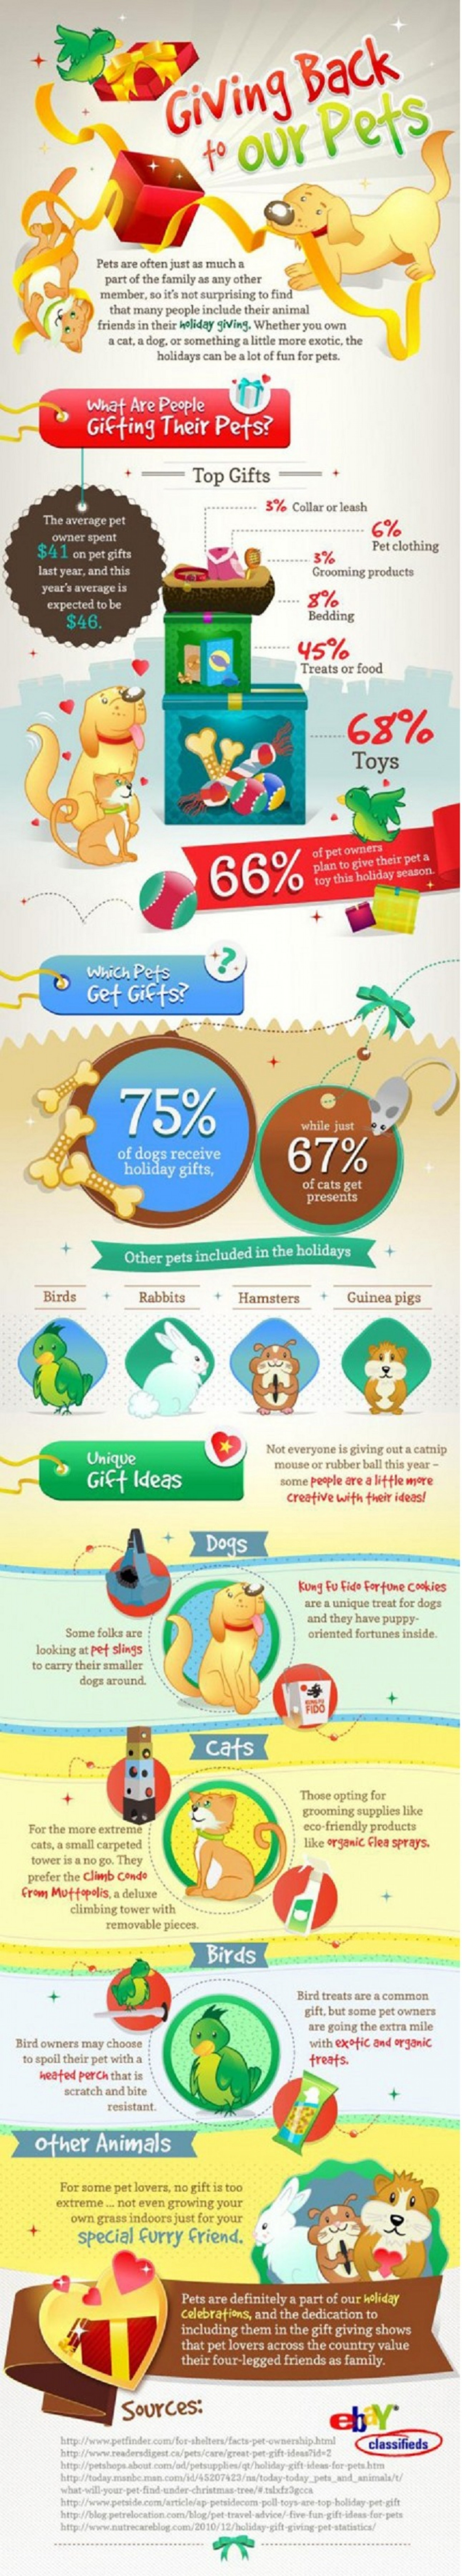 Giving Back To Our Pets Infographic